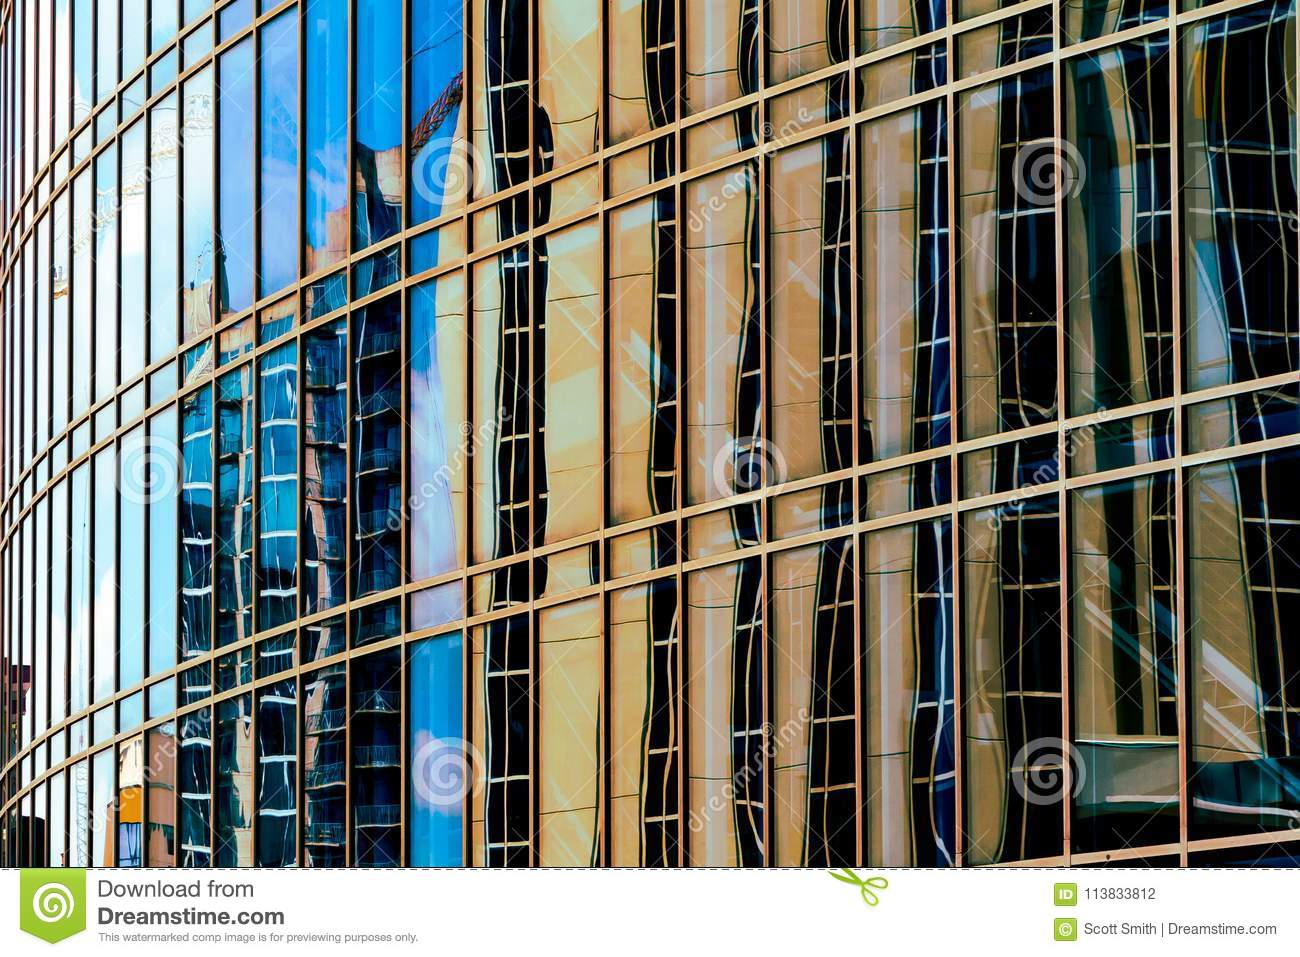 Abstract Urban Reflections with a Modern Sci-Fi Feel.